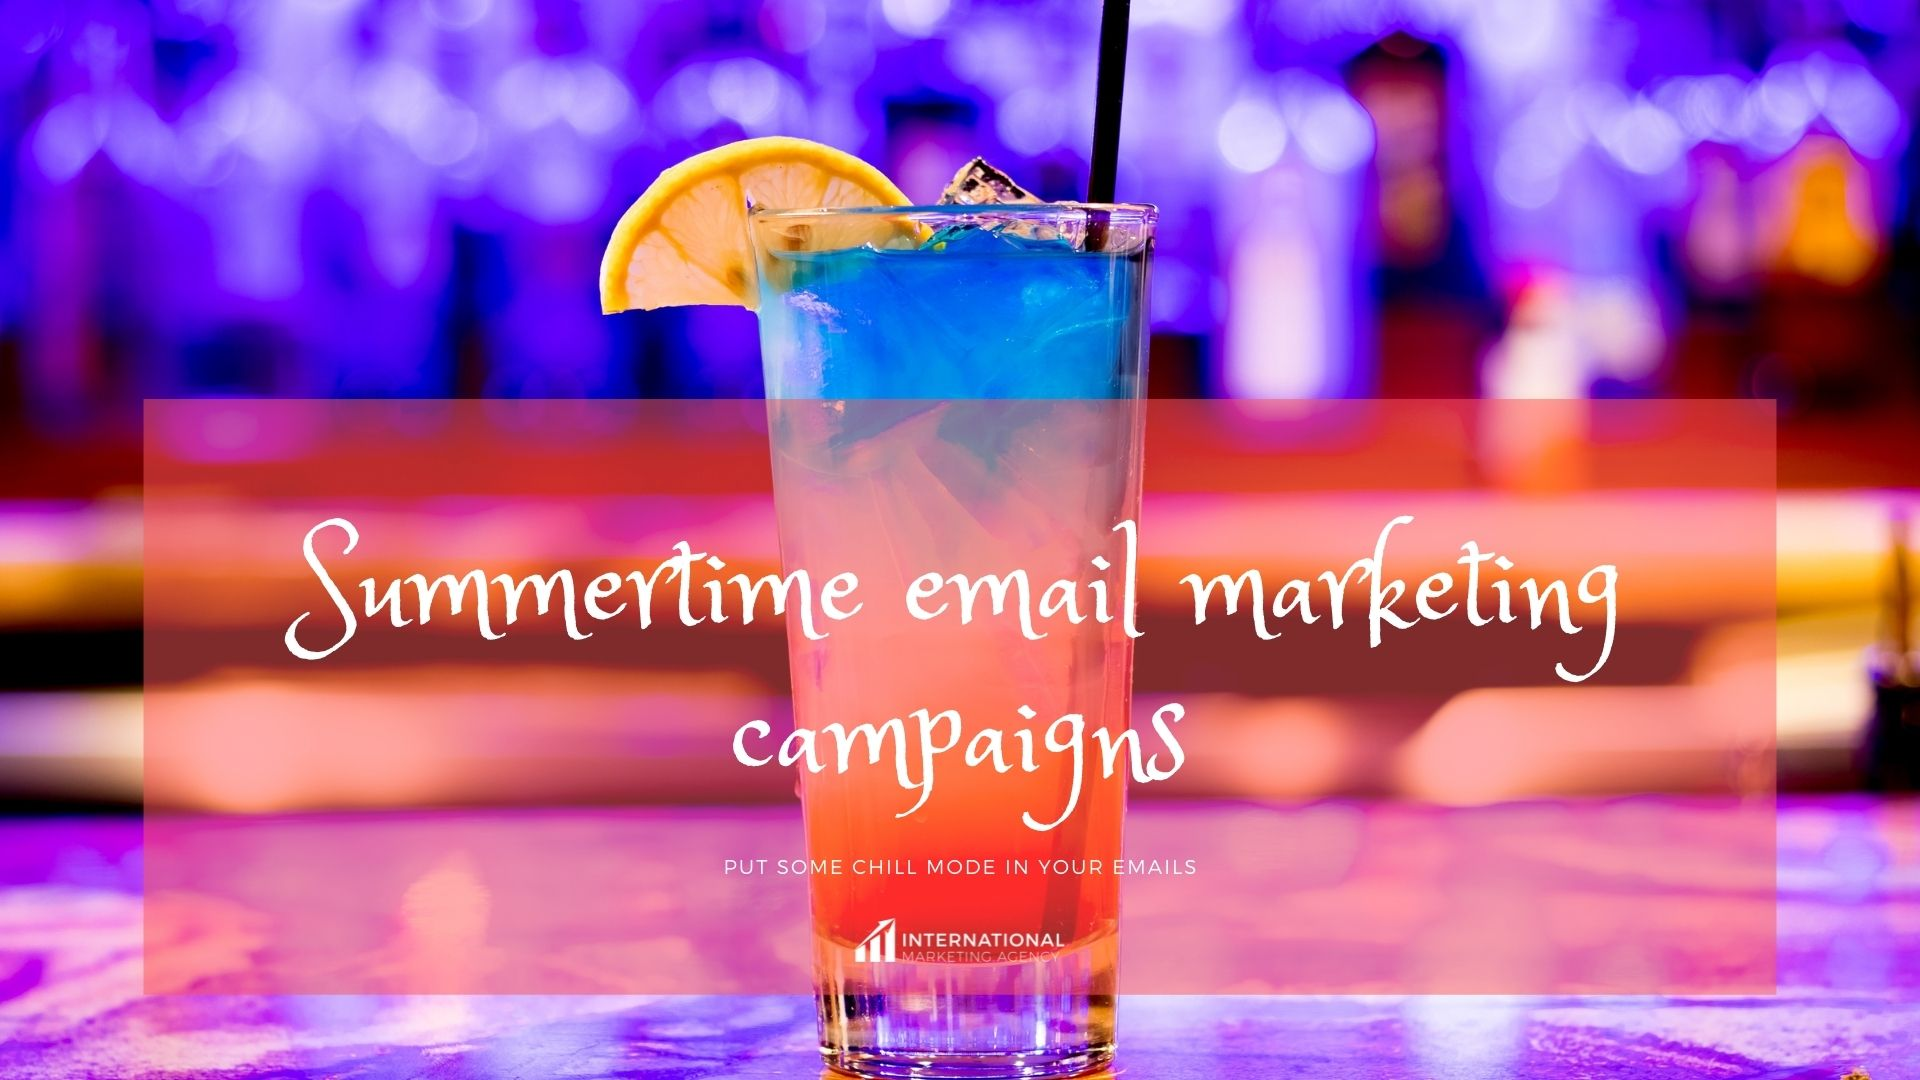 Summertime email marketing campaigns